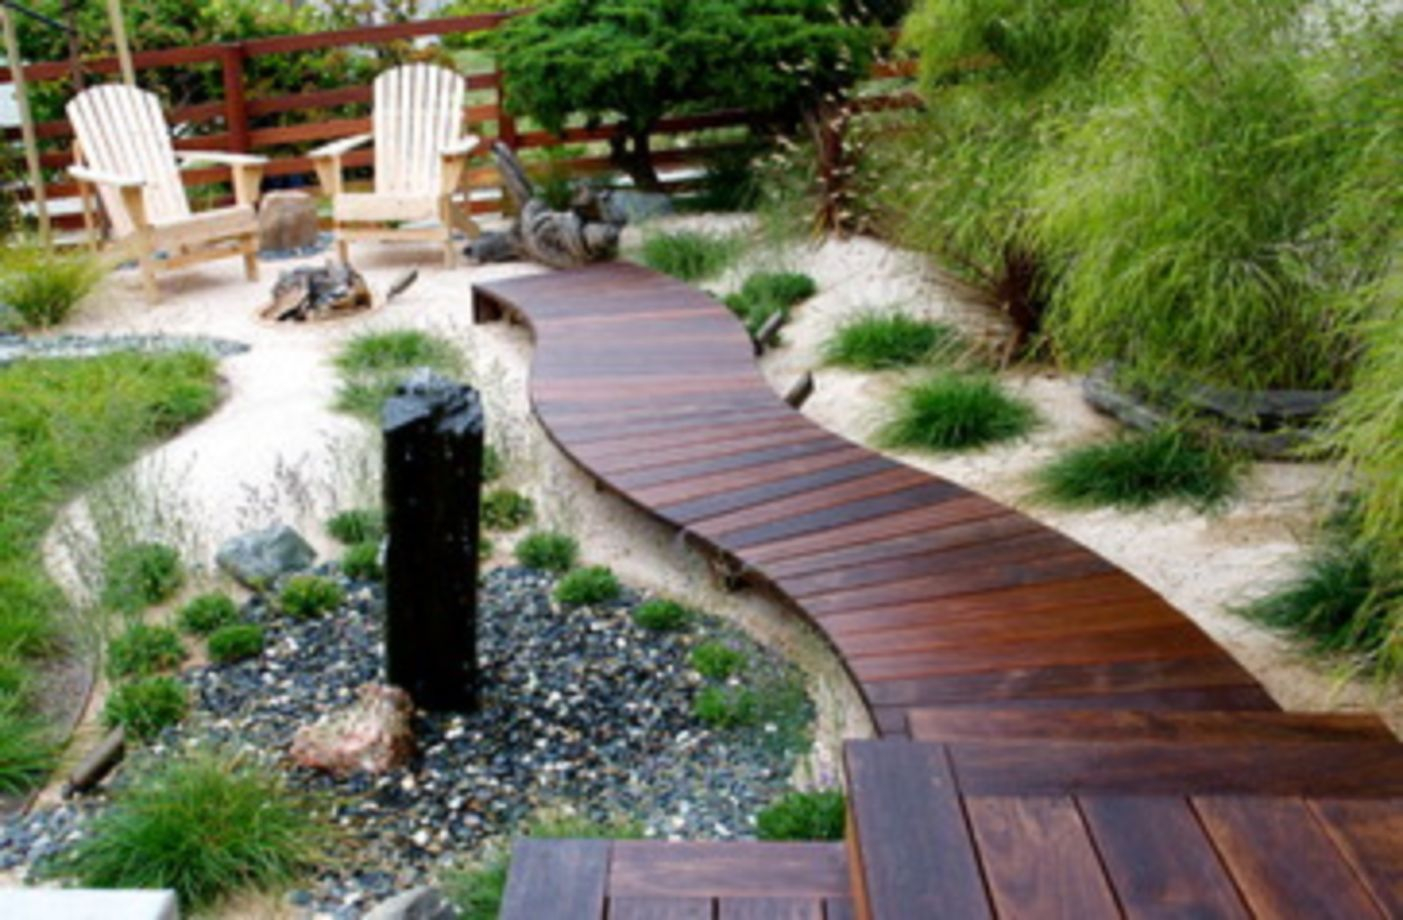 backyard landscape ideas gorgeous grassless backyard landscaping ideas 09 YAFSDOF